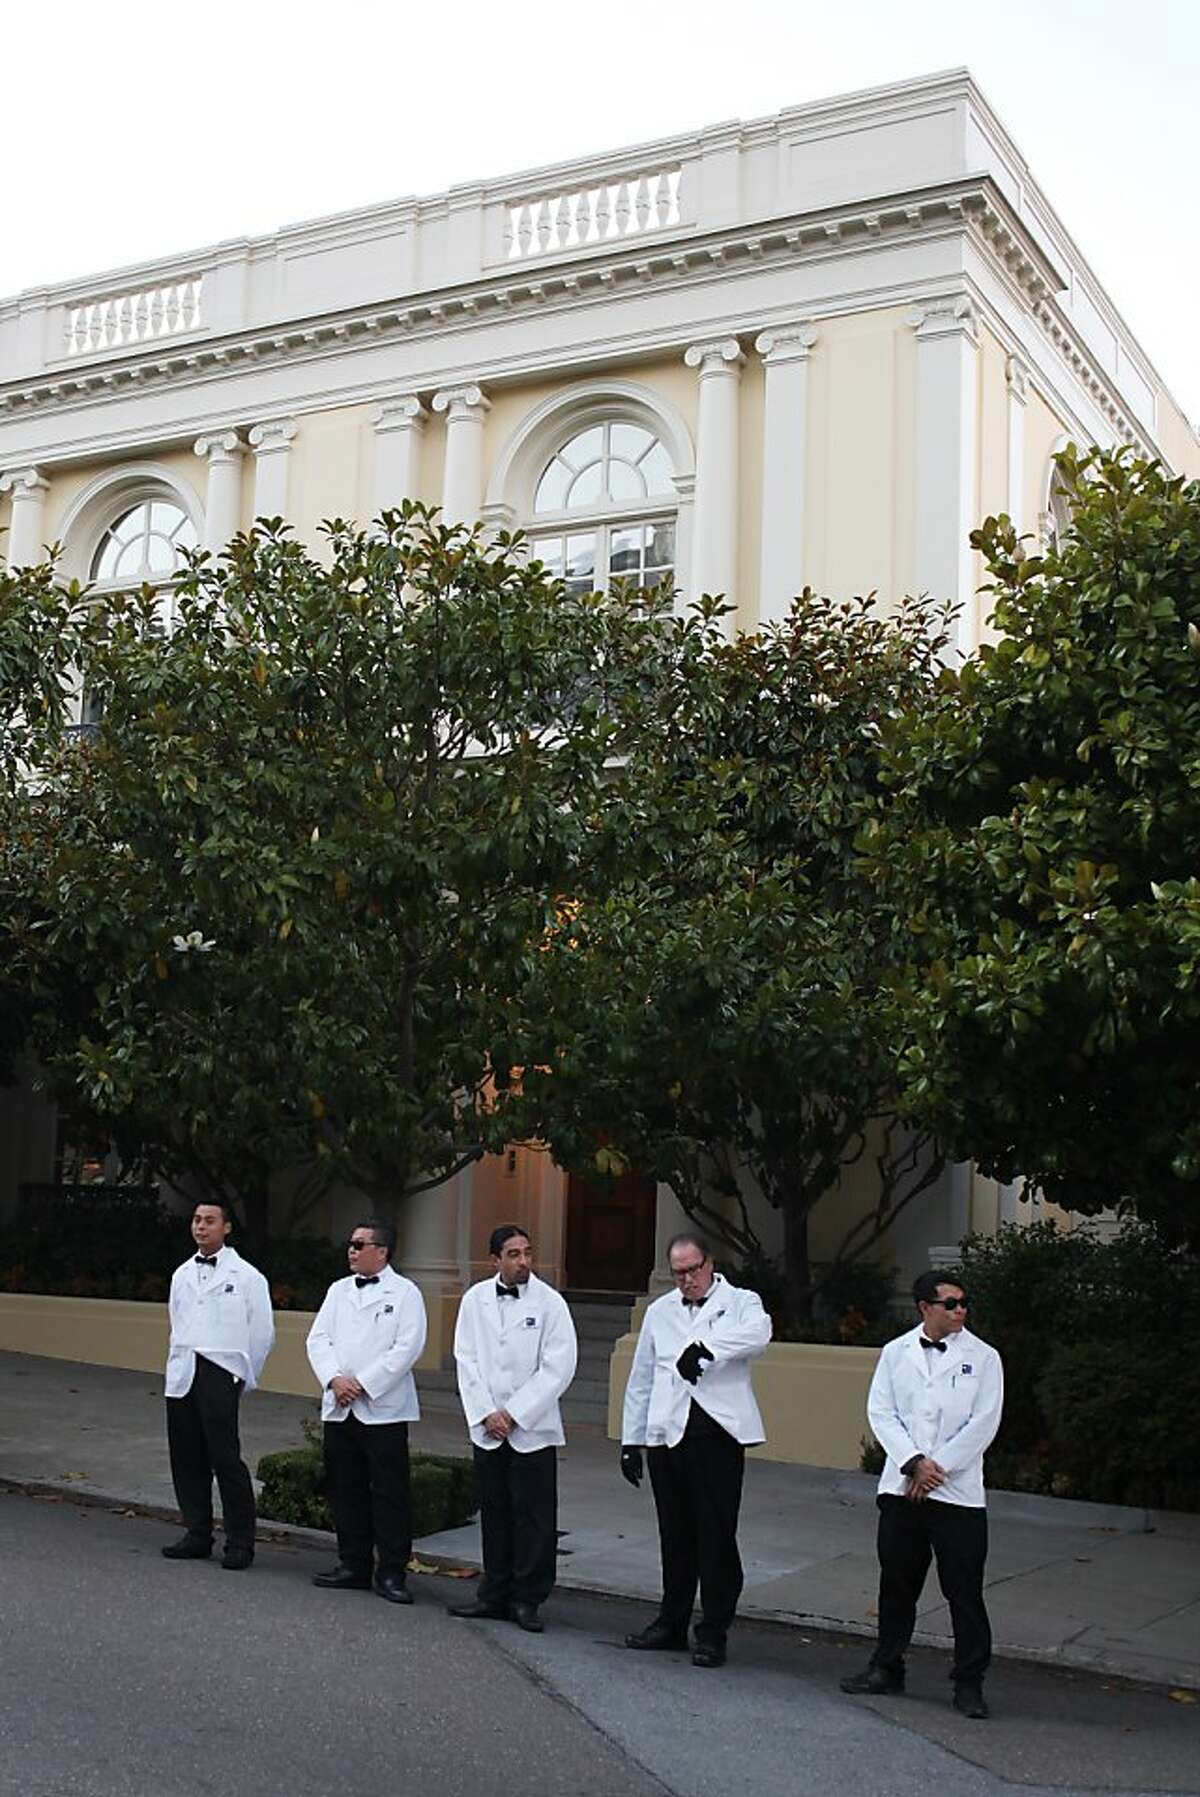 Valets wait to park cars for a private event on Broadway Street on September 25, 2013 in the Pacific Heights area of San Francisco, Calif.